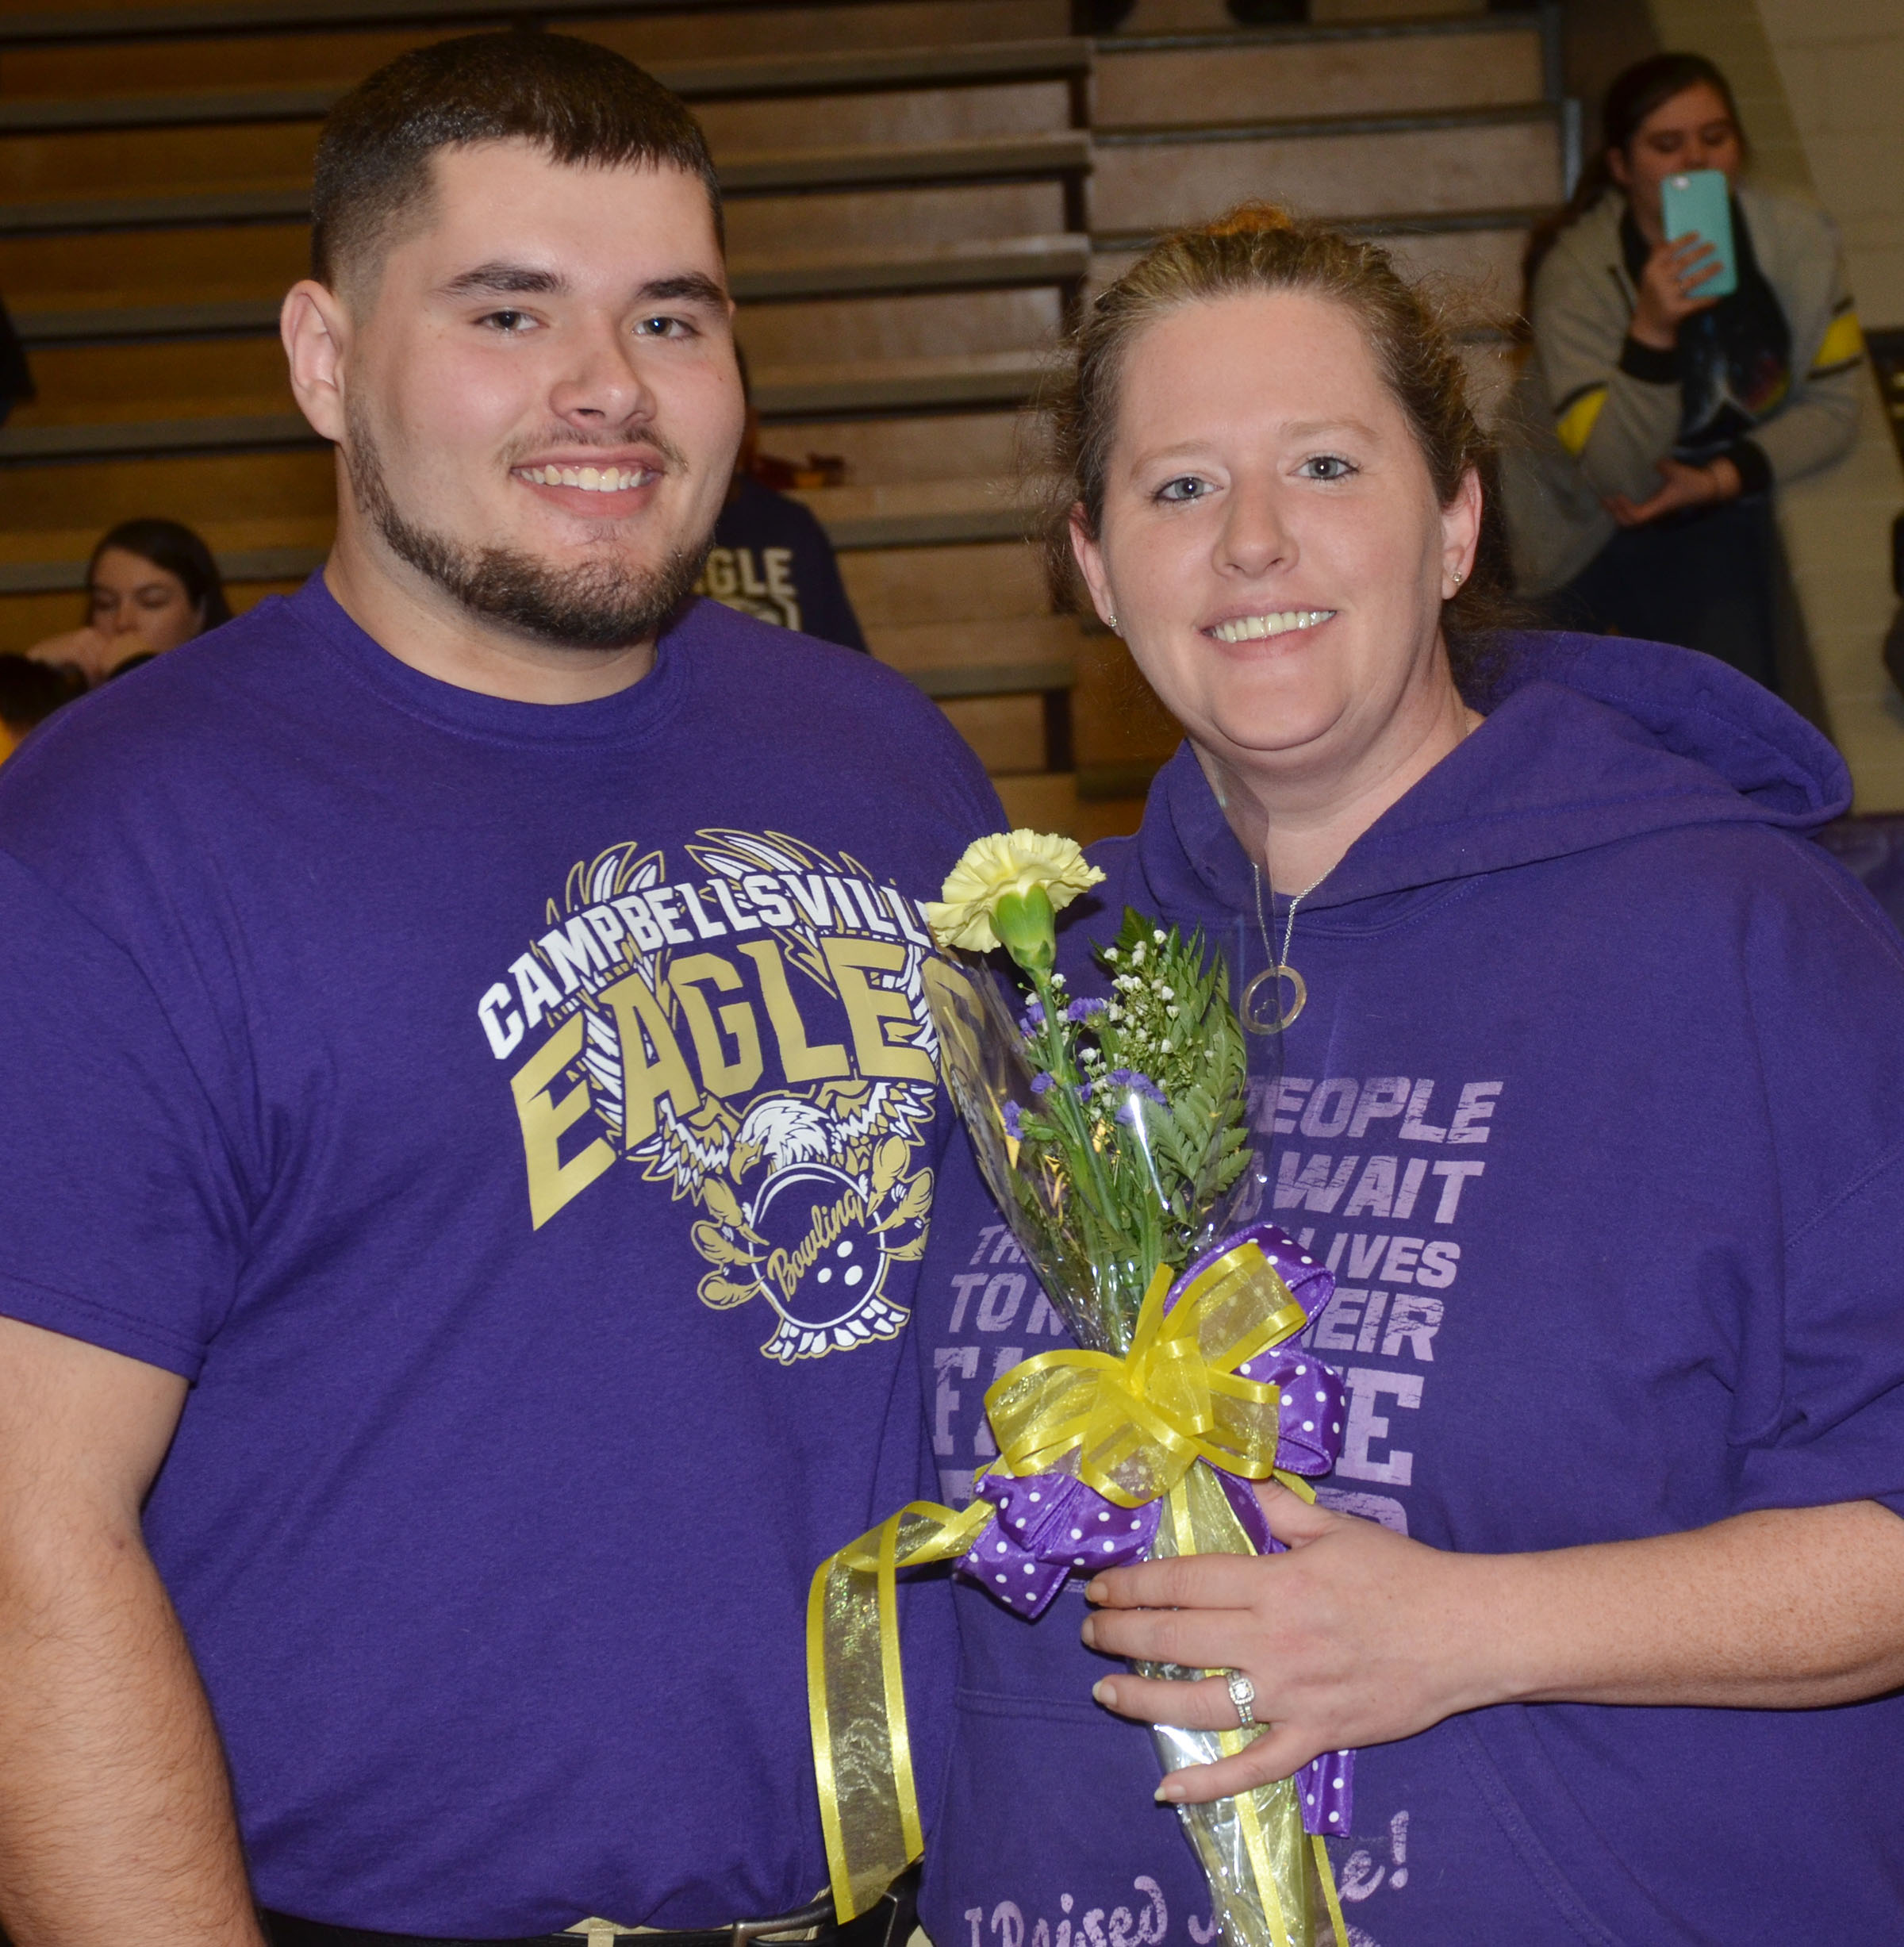 CHS senior bowling team member Logan Brown is honored. He is pictured with his mother, Krissy Welch.